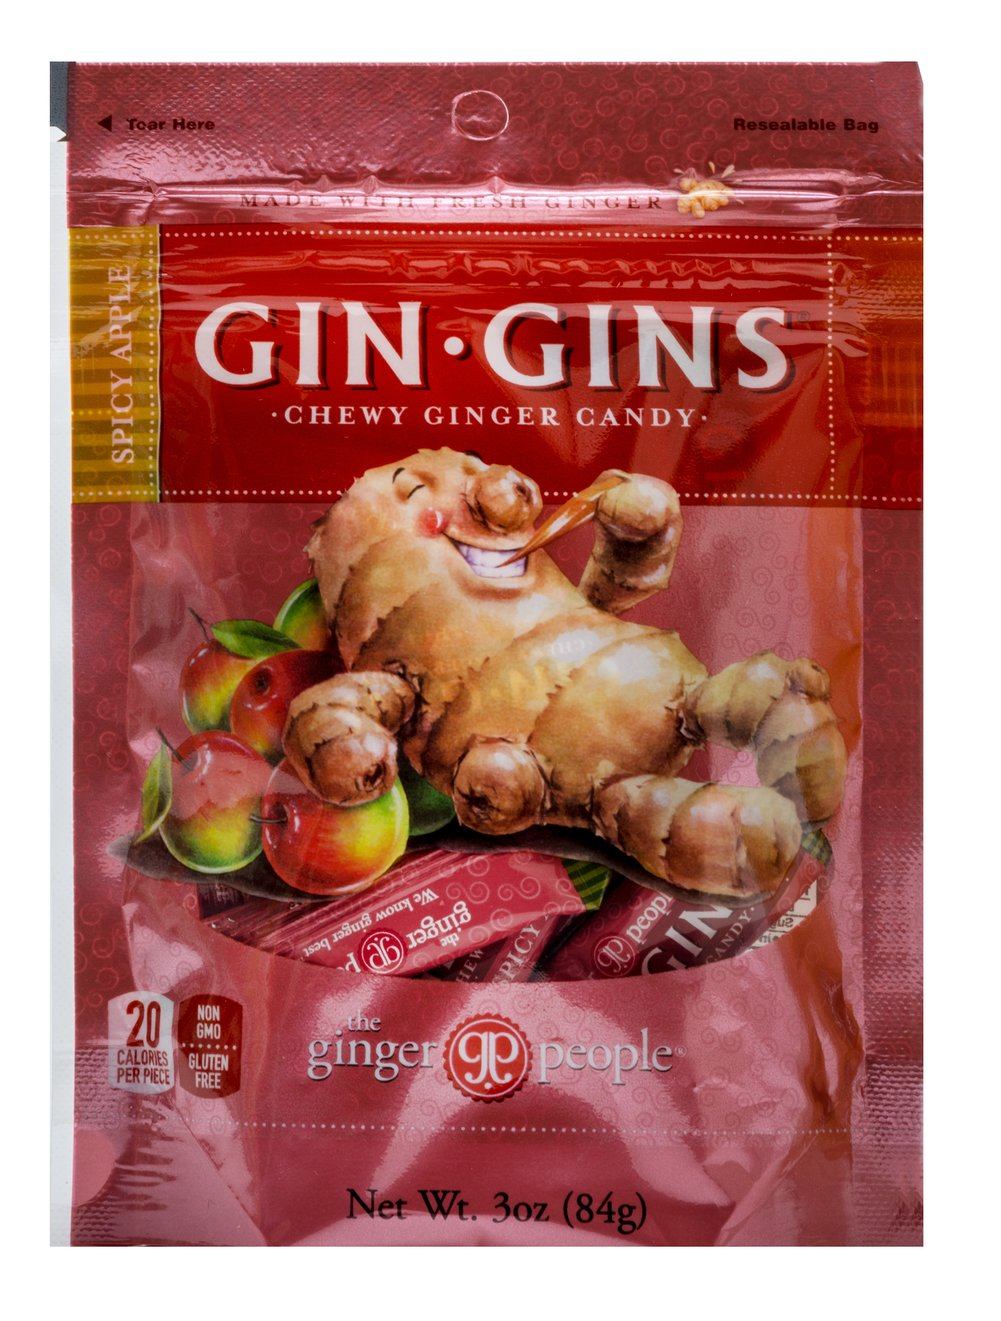 Spicy Apple Ginger Chews Stimulating and delicious, these Spicy Apple Ginger Chews combine the peppery pop of ginger, cinnamon oil, and allspice oil with the refreshing sweetness of apple flavor.<br /> 3 oz Bag  $3.99